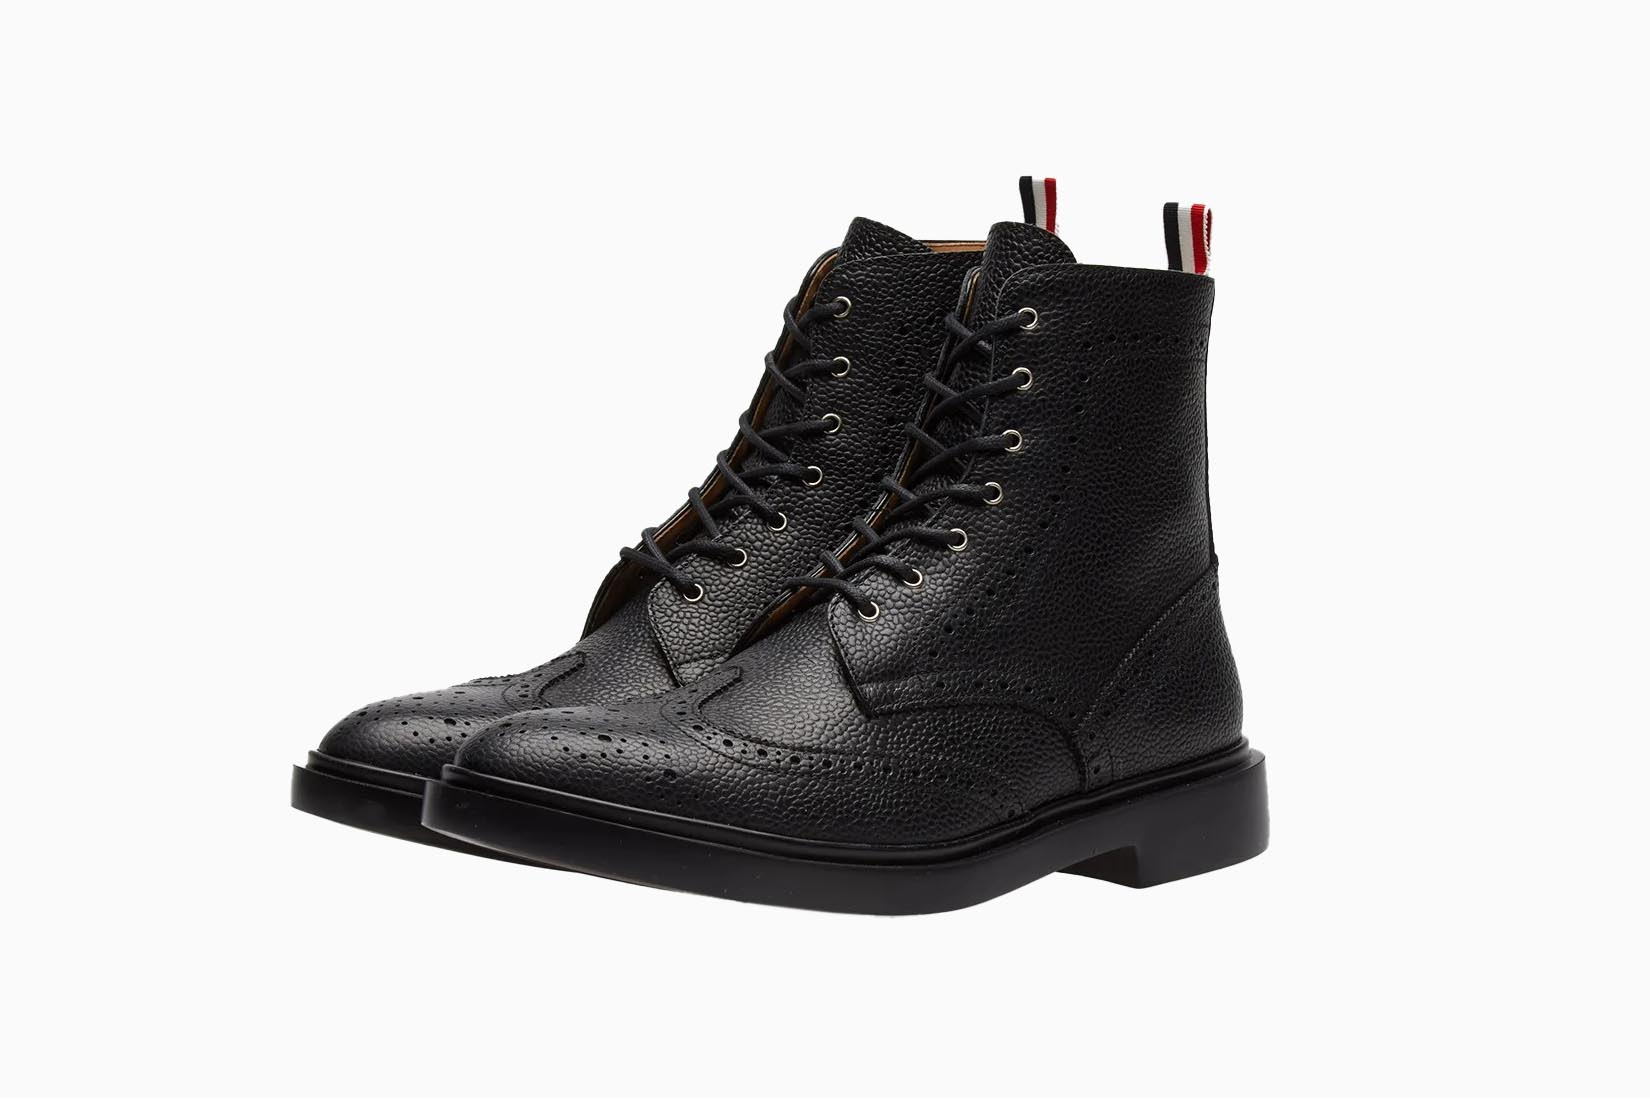 best boots men thom browne longwing boots review Luxe Digital